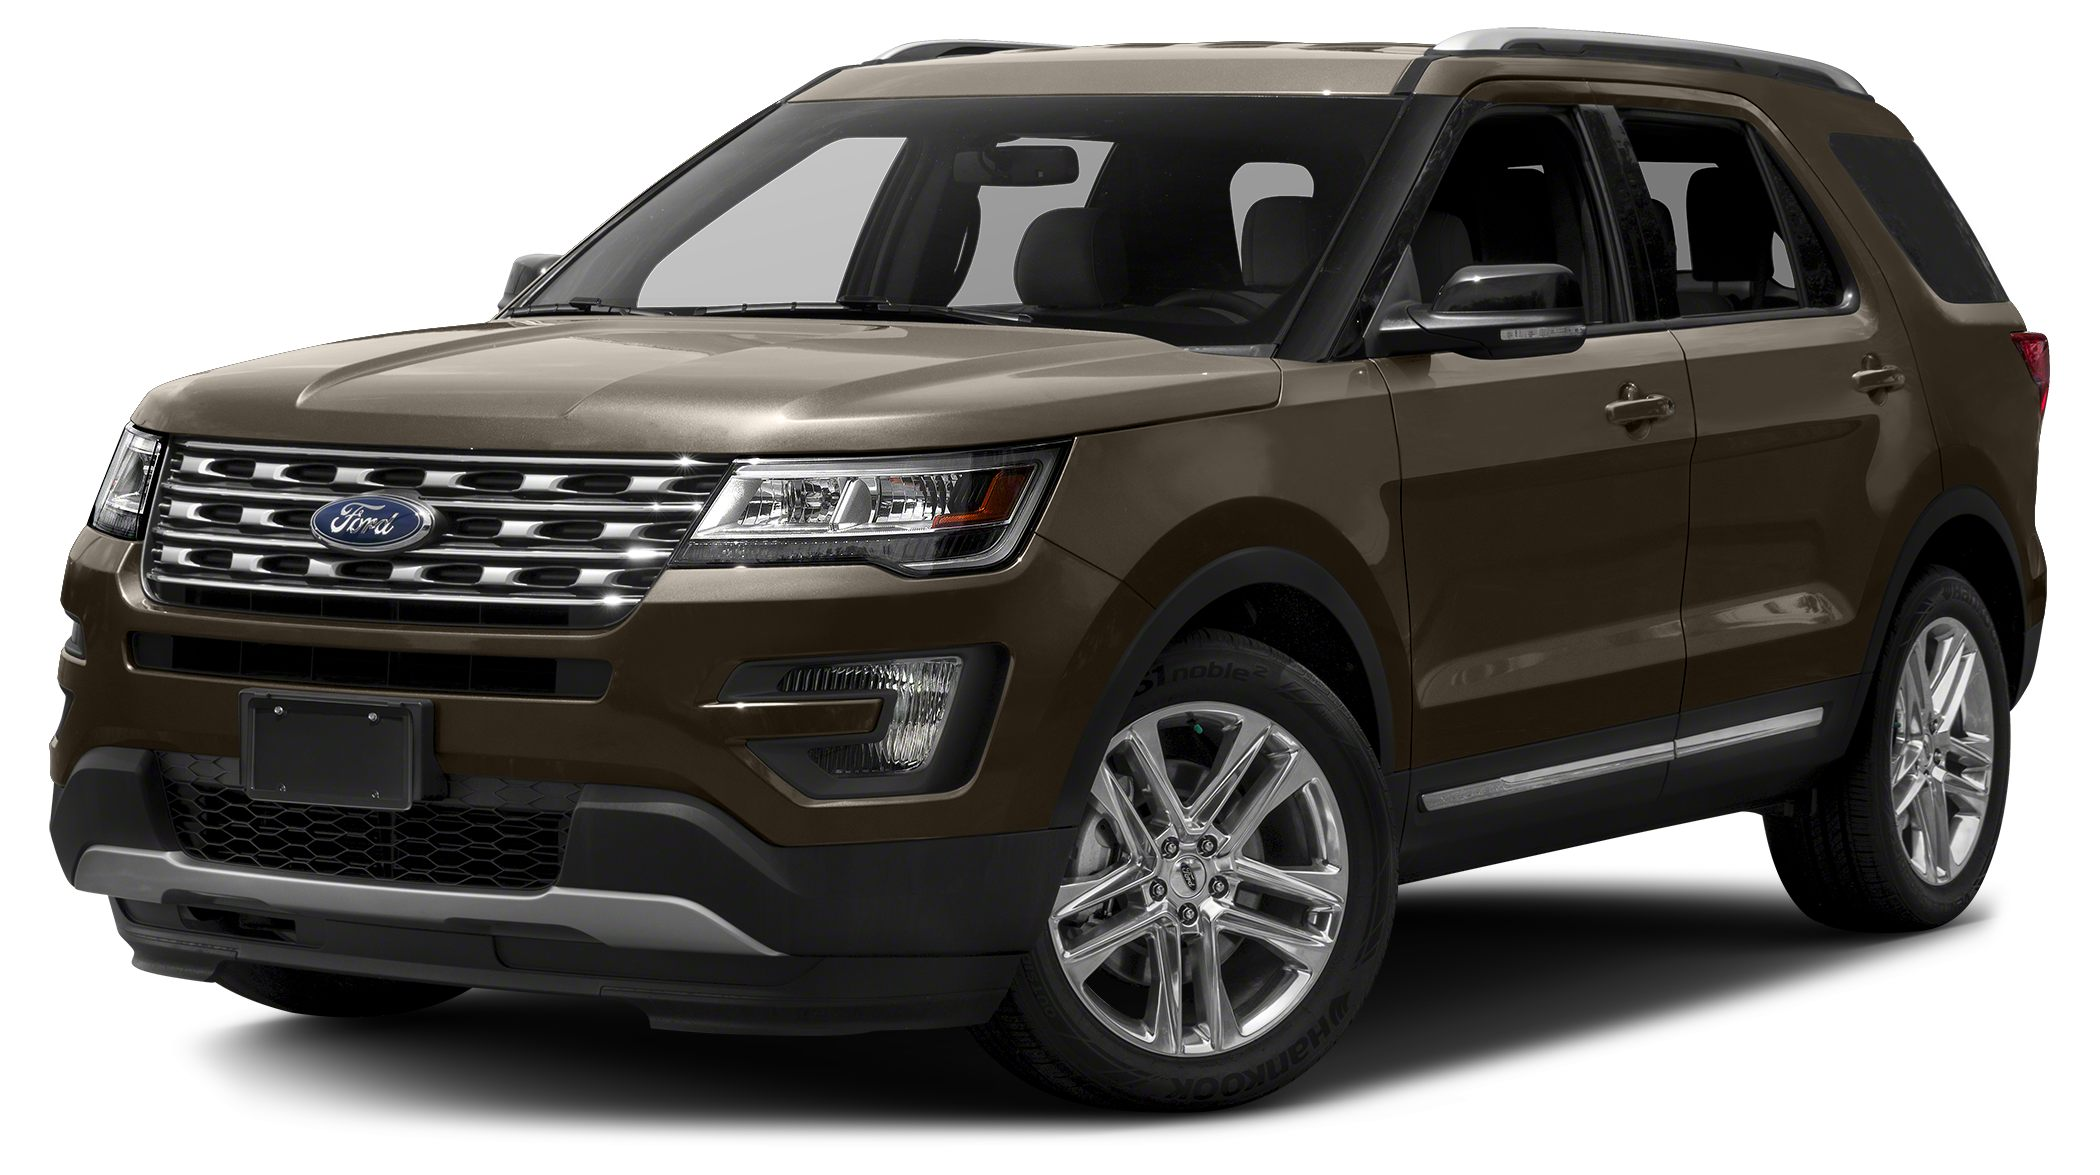 2016 Ford Explorer XLT Introducing the 2016 Ford Explorer Youll appreciate its safety and conven